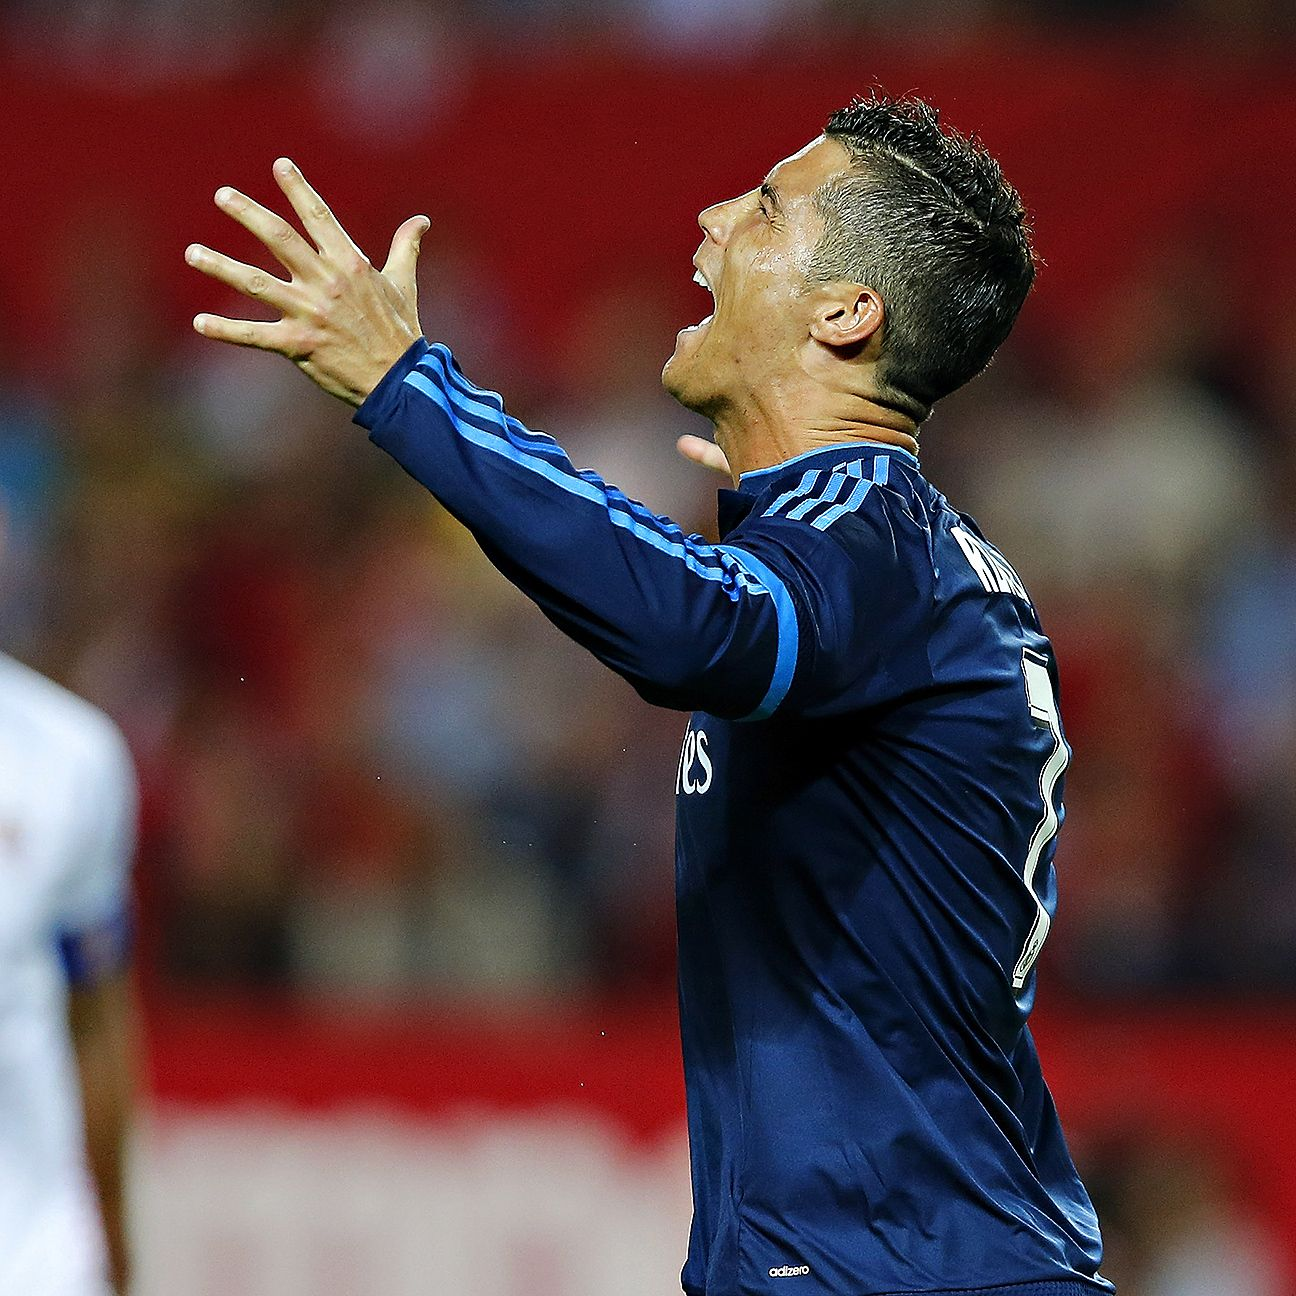 Cristiano Ronaldo and Real Madrid were steamrolled by Sevilla's second half.